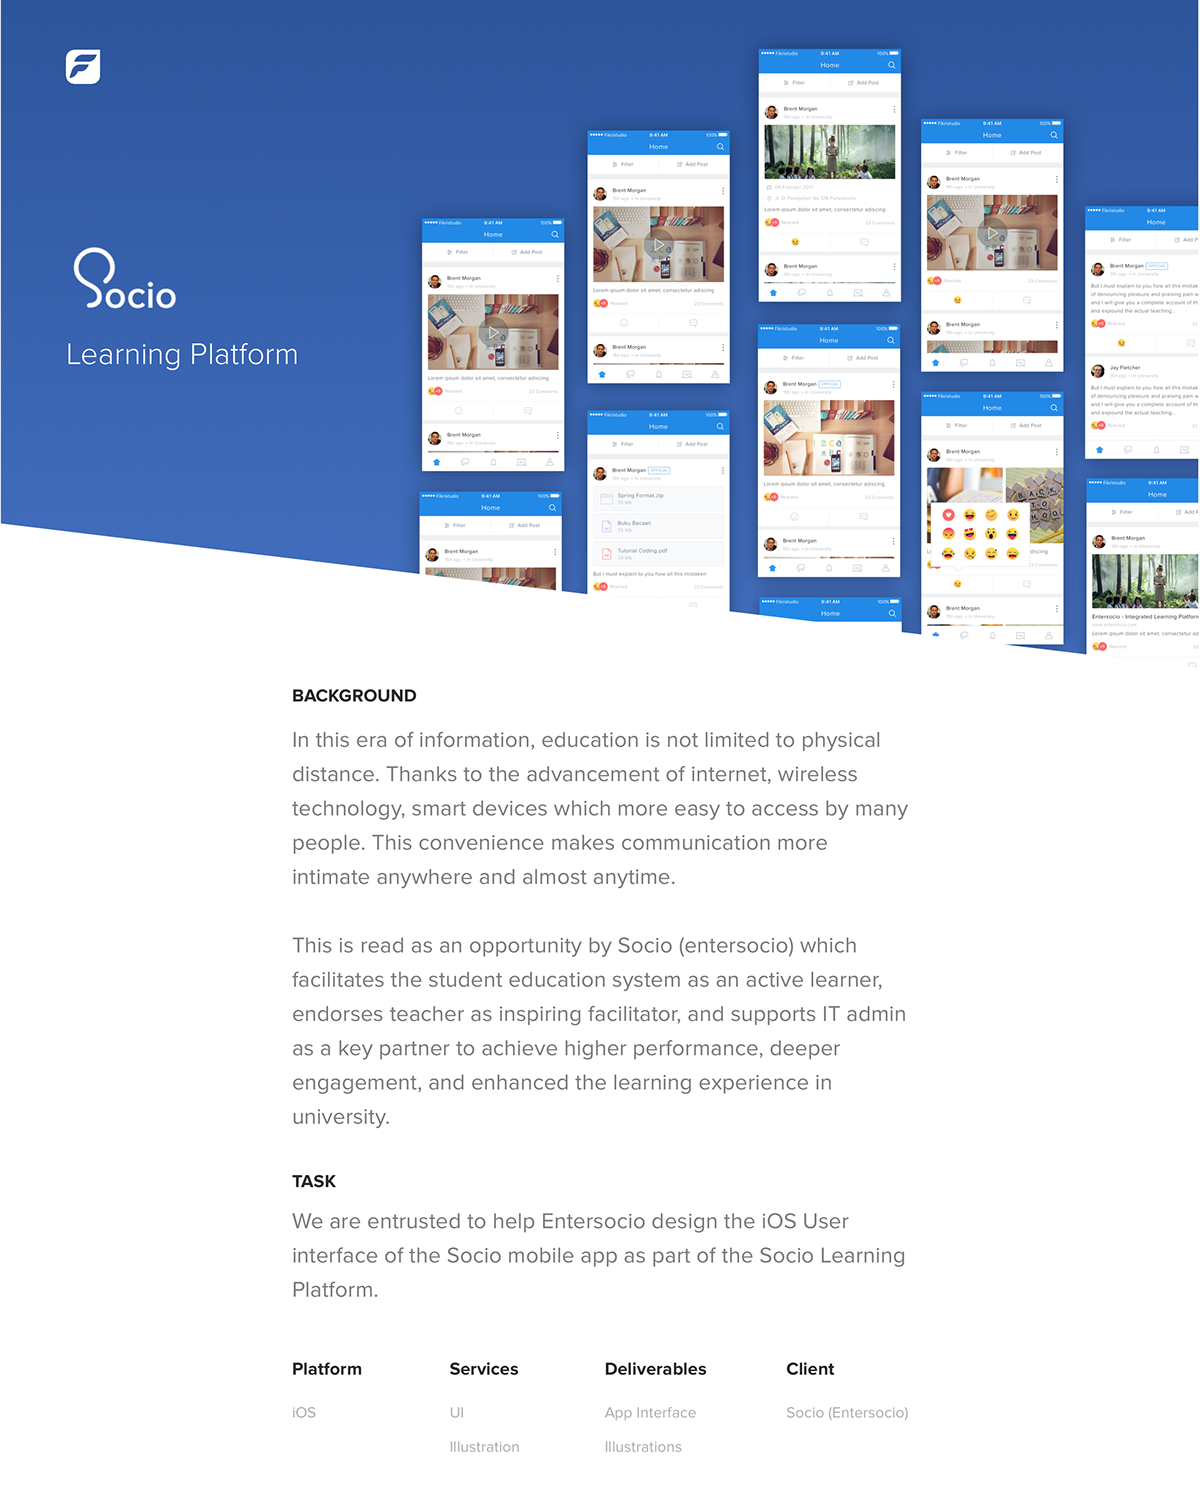 platform for elearning experience Start your e-learning project in minutes to instantly deliver training to users across the globe with docebo cloud lms modern user interface docebo learning management system user interface is intuitive and easy to navigate for an unparalleled user experience.